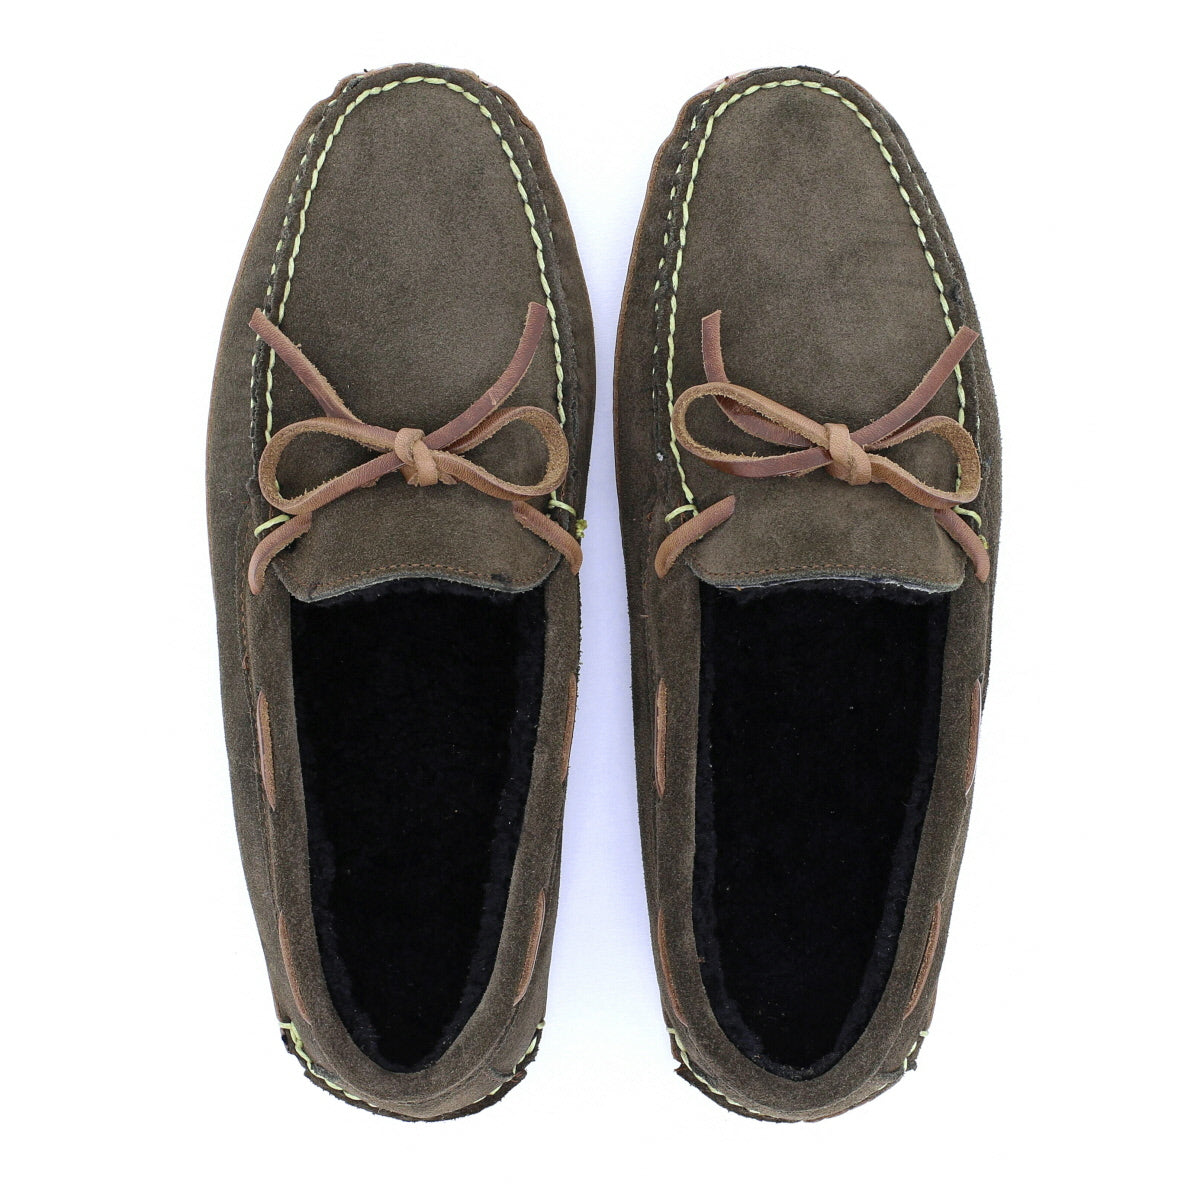 Redington Slipper - Loden Suede / Natural Chromexcel